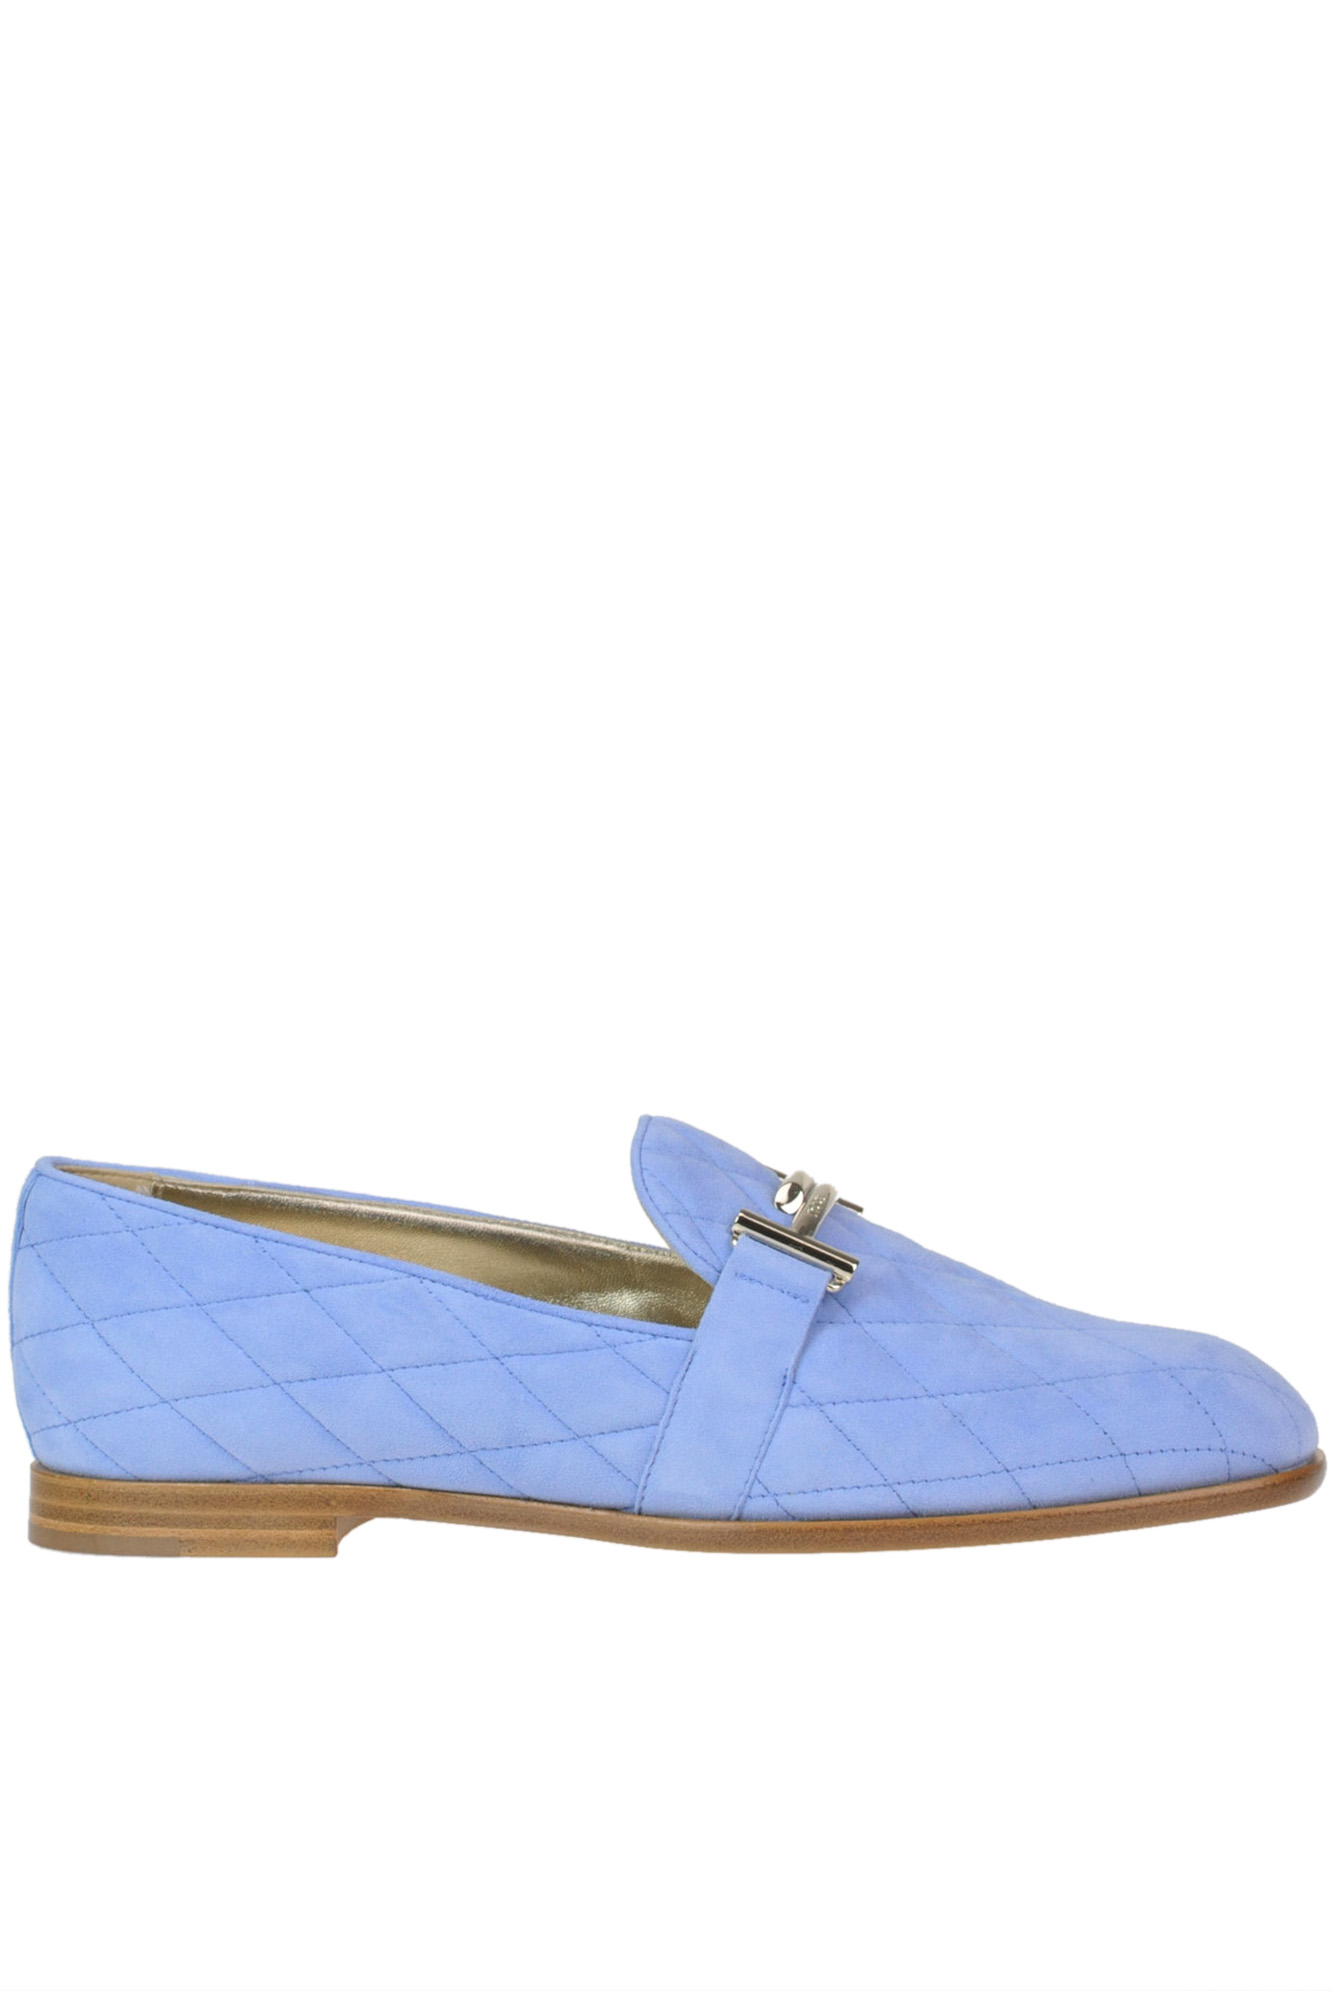 utterly stylish 2018 sneakers special sales Tod's Quilted suede loafers - Buy online on Glamest.com - Glamest ...